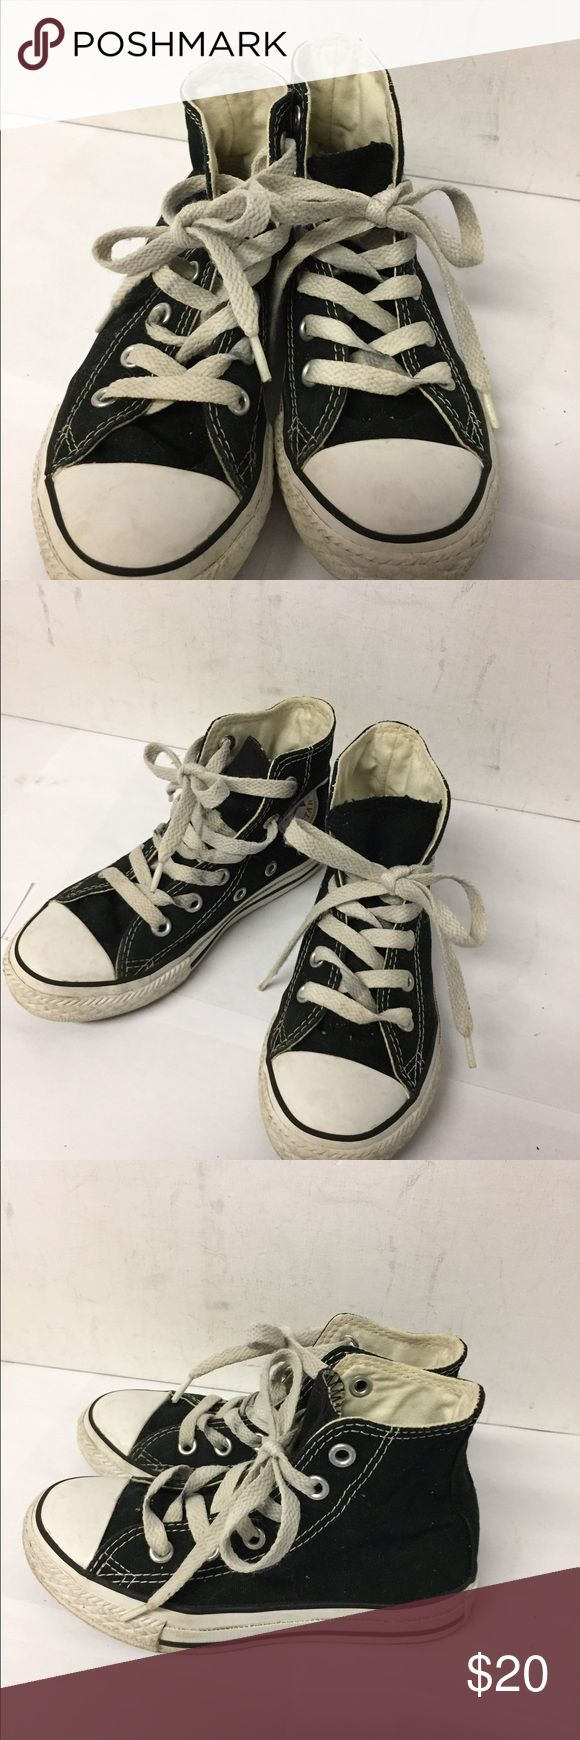 Converse Chuck Taylor Black Hi Tops sz 11 Has a few marks on the white top but these are in good clean condition Converse Shoes Sneakers